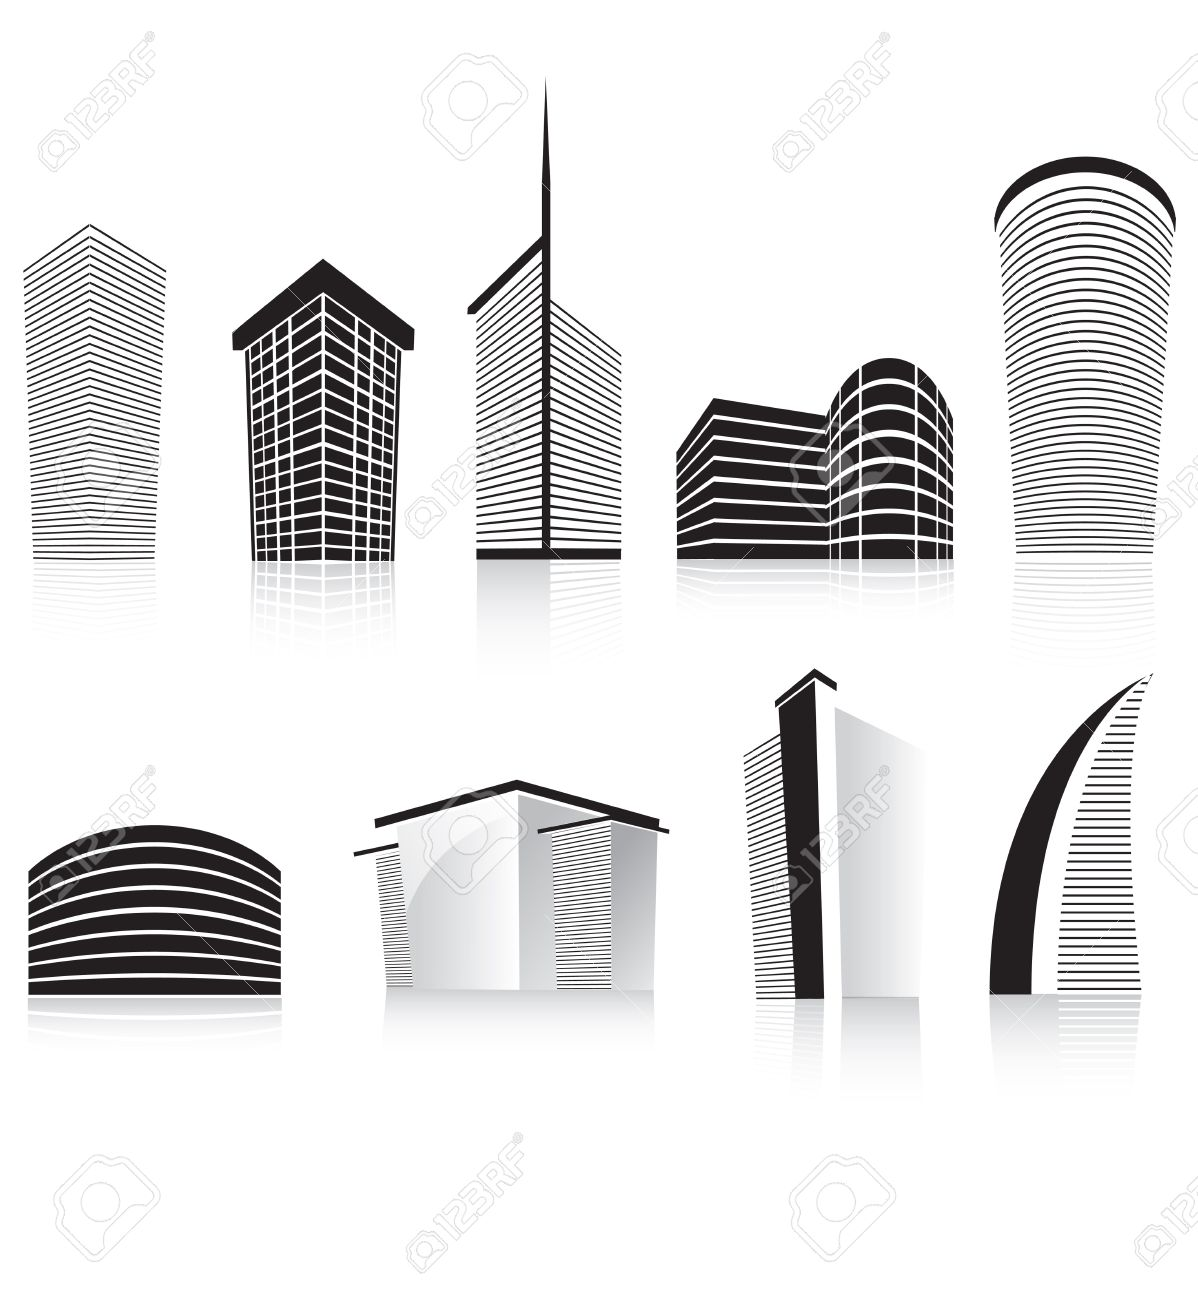 silhouettes of generic modern city office skyscrapers and headquarters buildings Stock Vector - 9991728